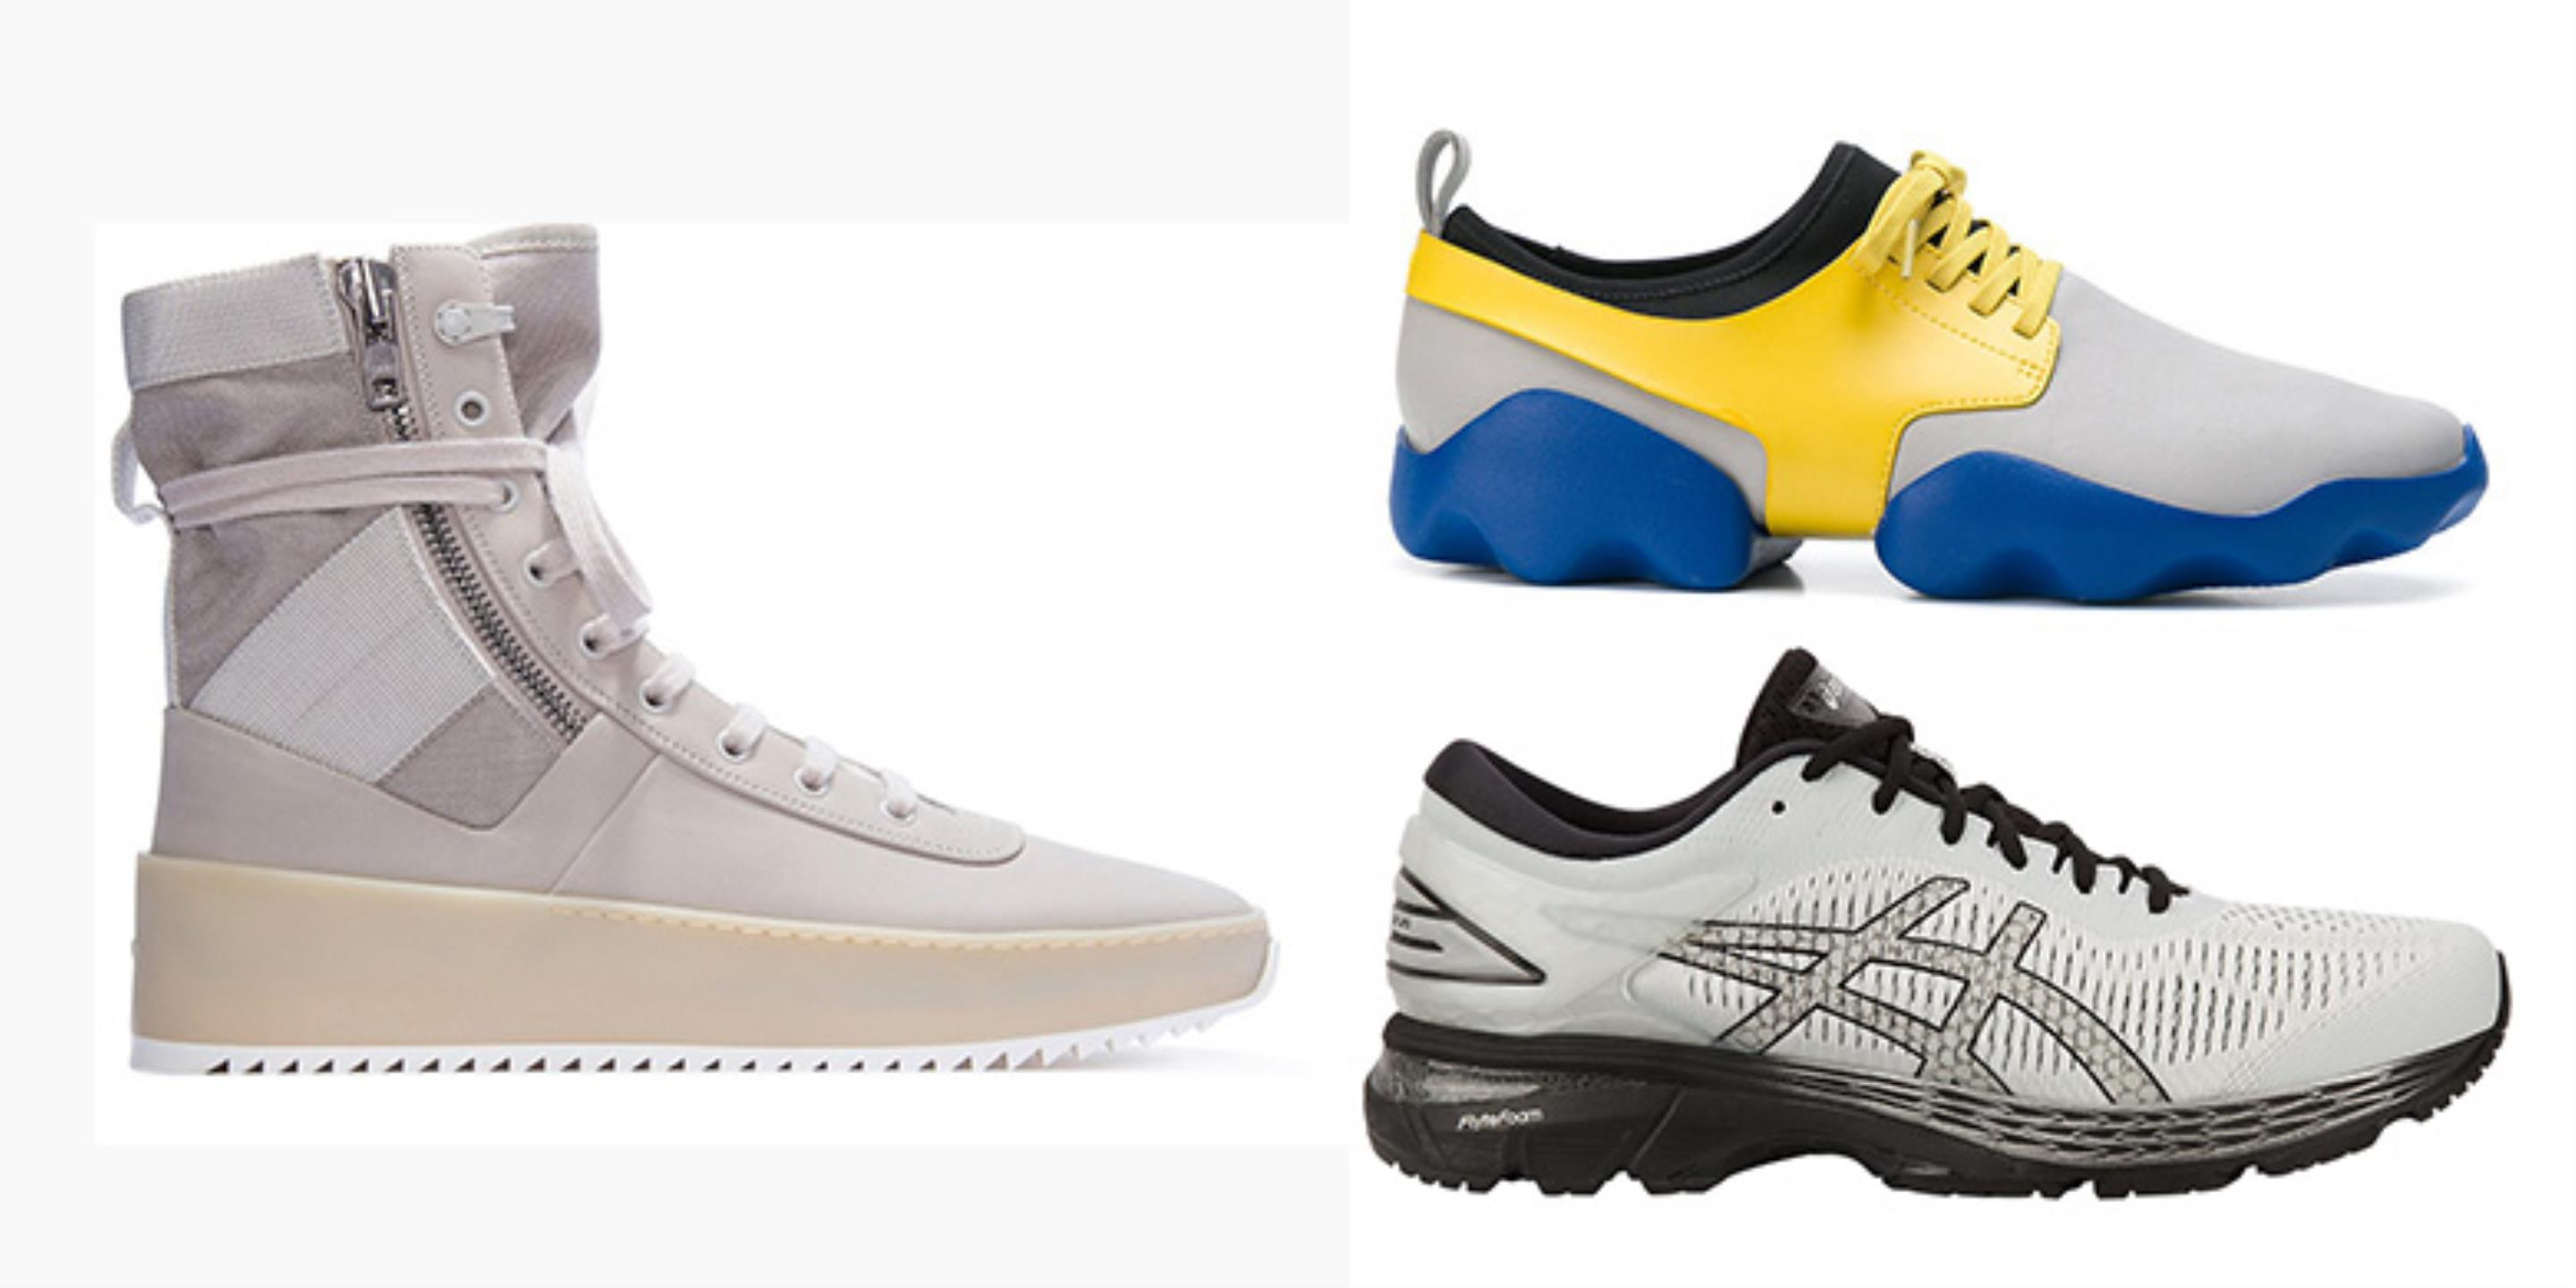 Most Comfortable Summer Sneakers For Men 5 Stylish Picks Furthermore